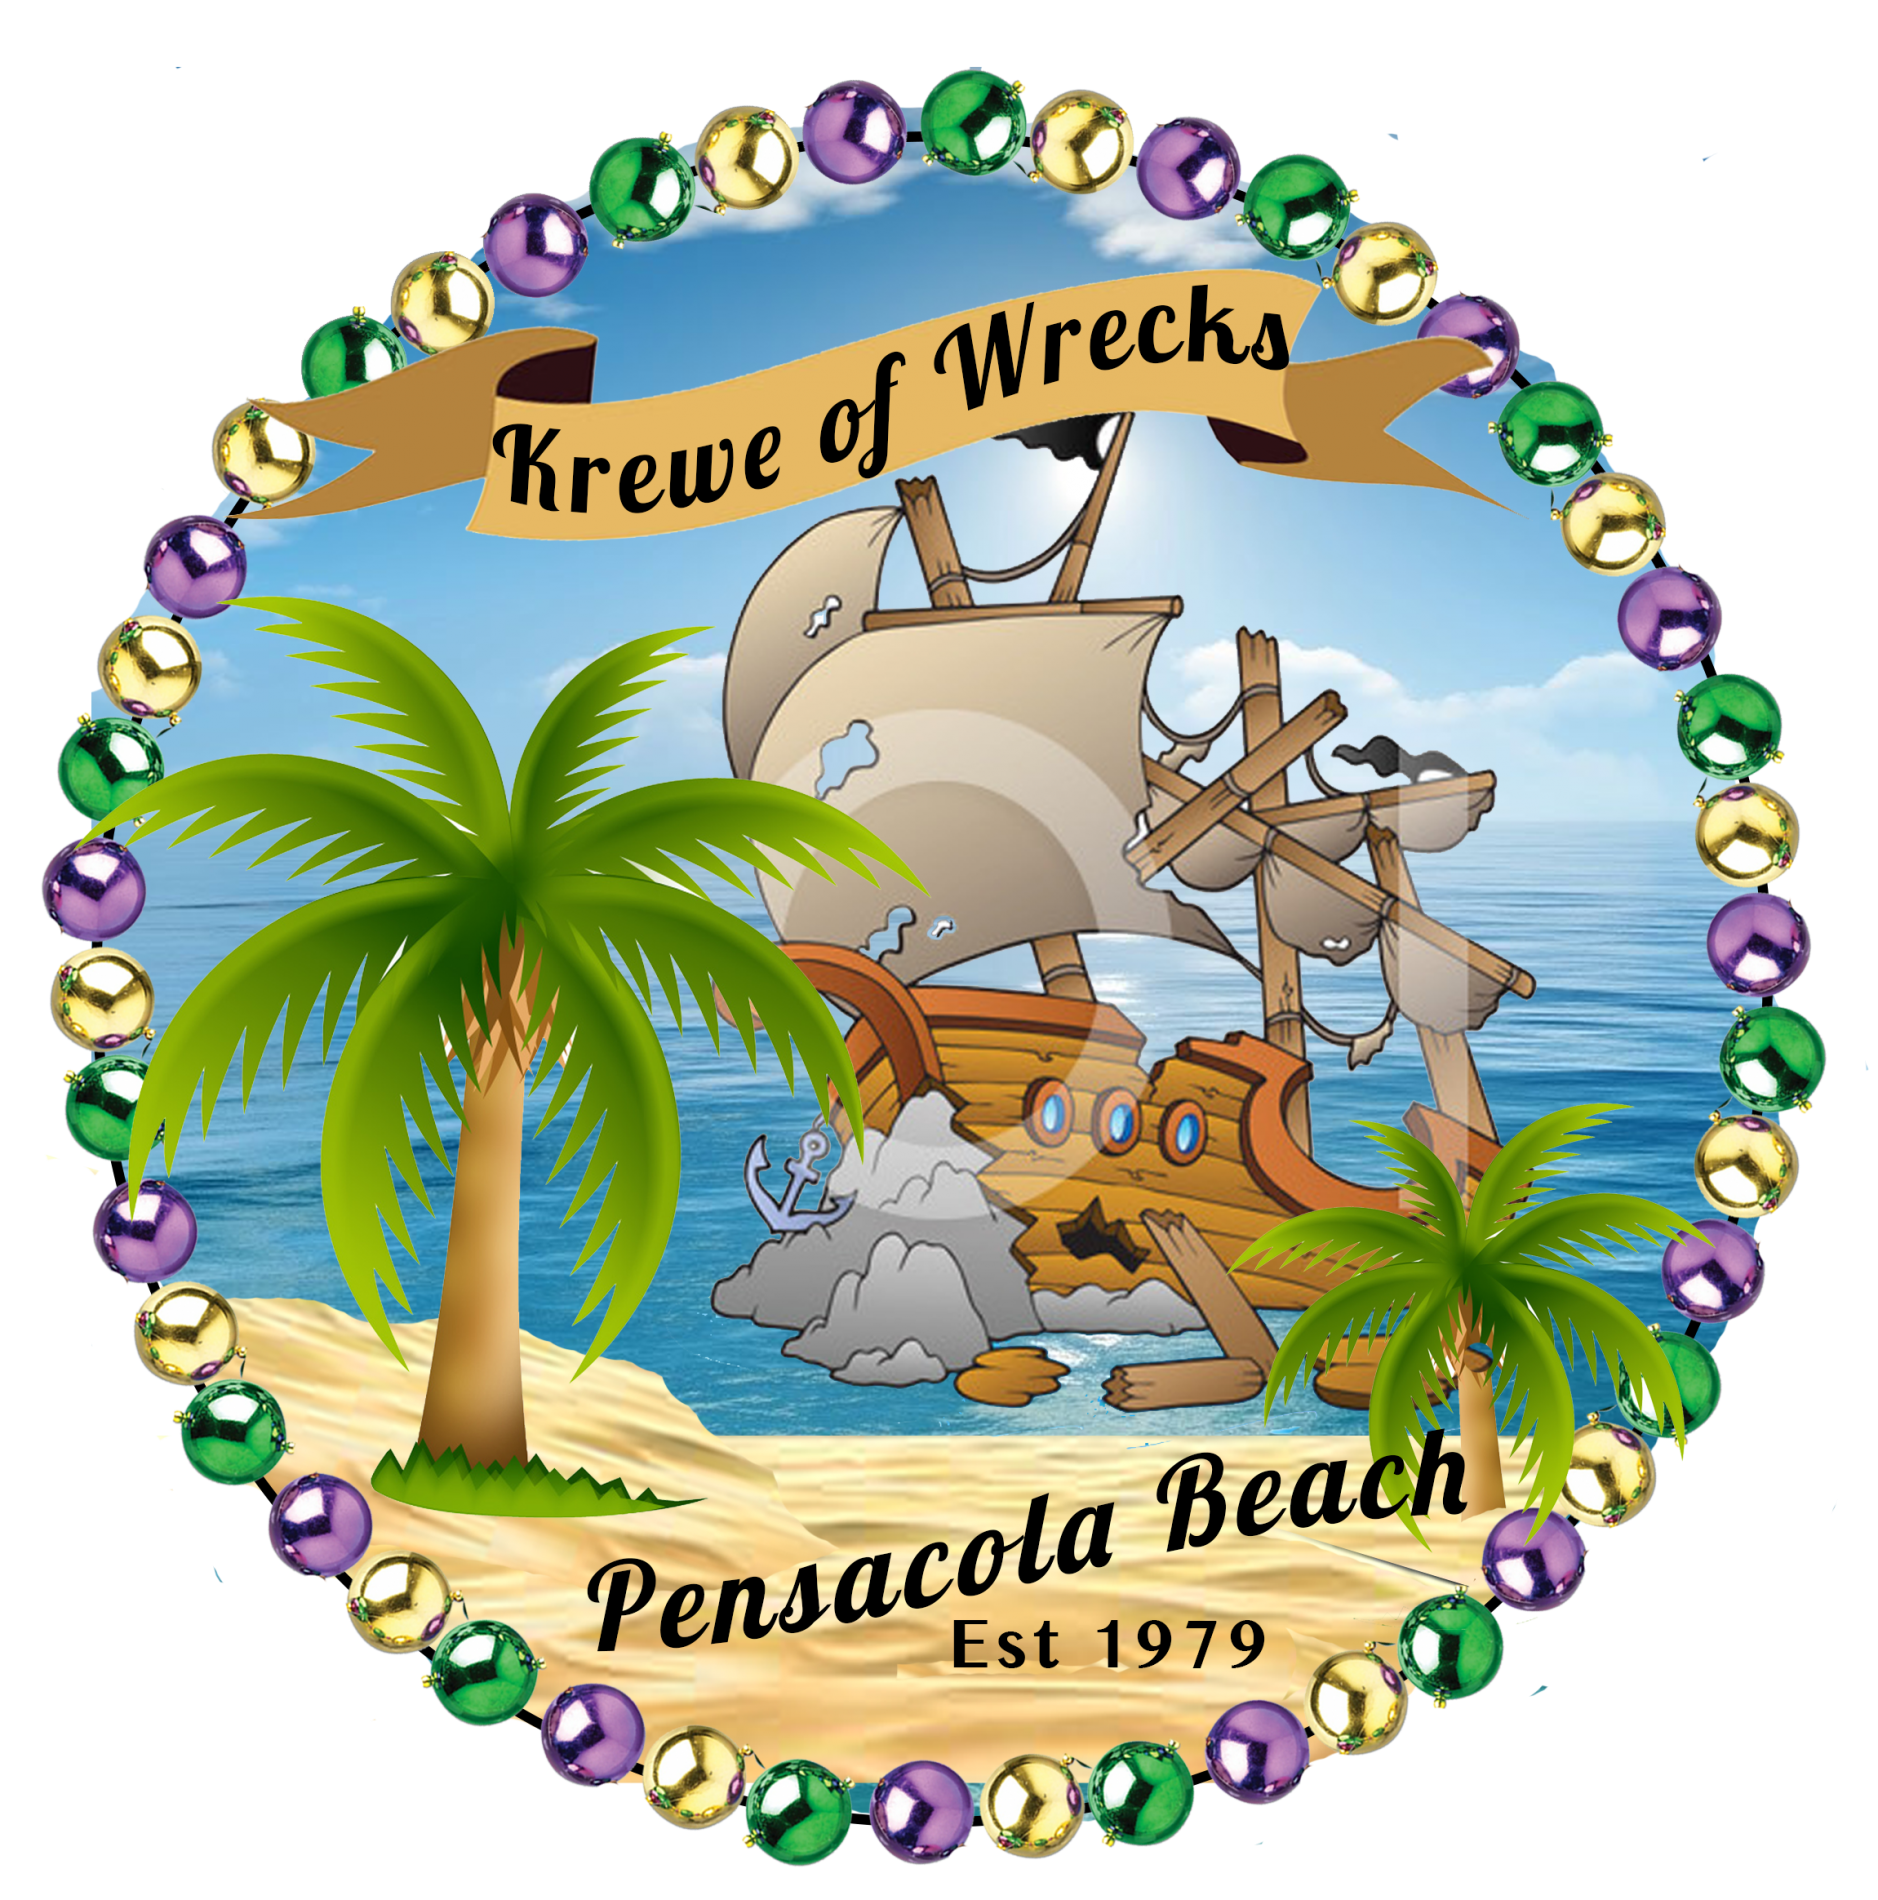 round logo of a shipwreck surrounded by purple, gold, and green beads with banner pronouncing Krewe of Wrecks and Pensacola Beach Est 1979